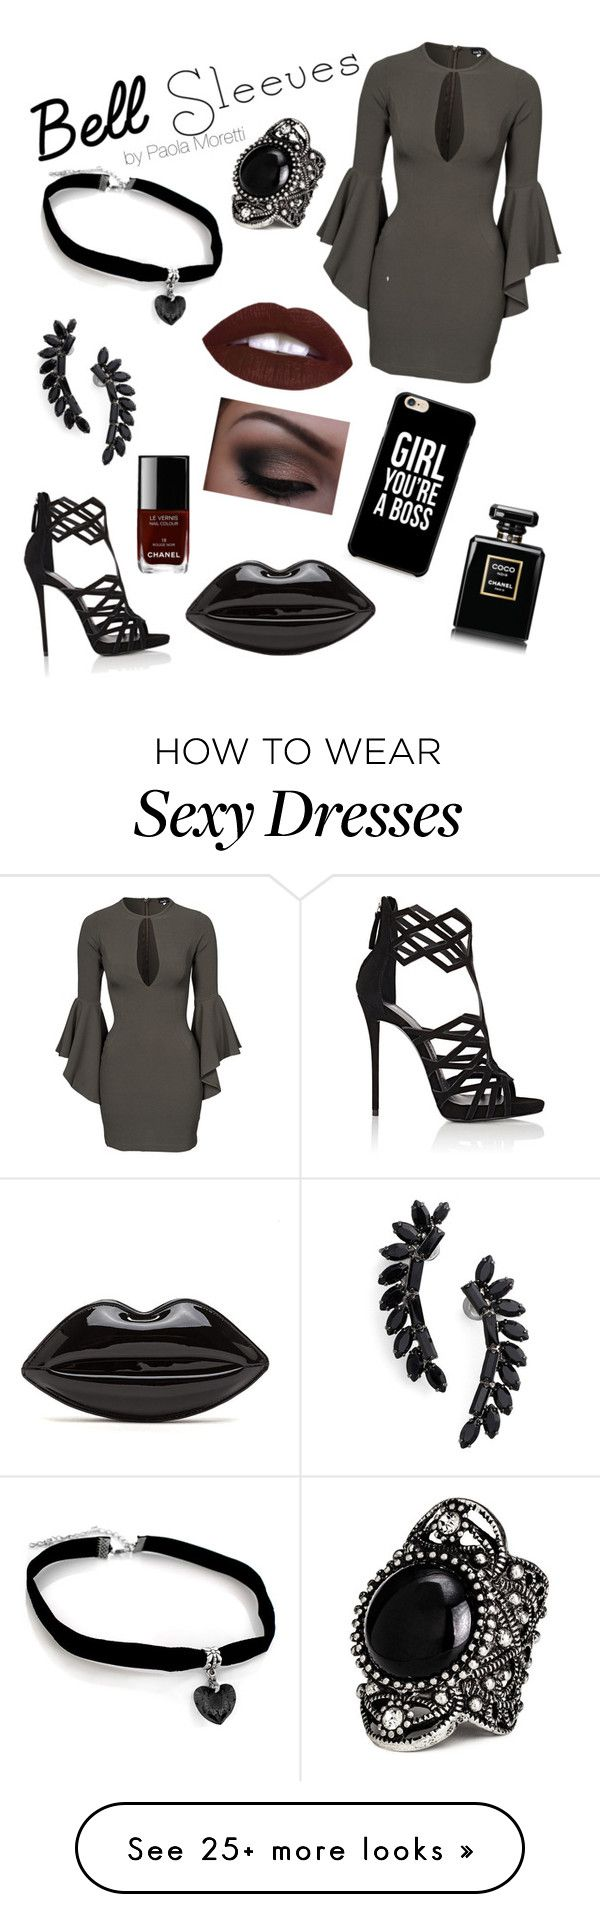 """""""Bell sleeves's look!"""" by paola-moretti on Polyvore featuring John Zack, Giuseppe Zanotti, Cristabelle and Chanel"""